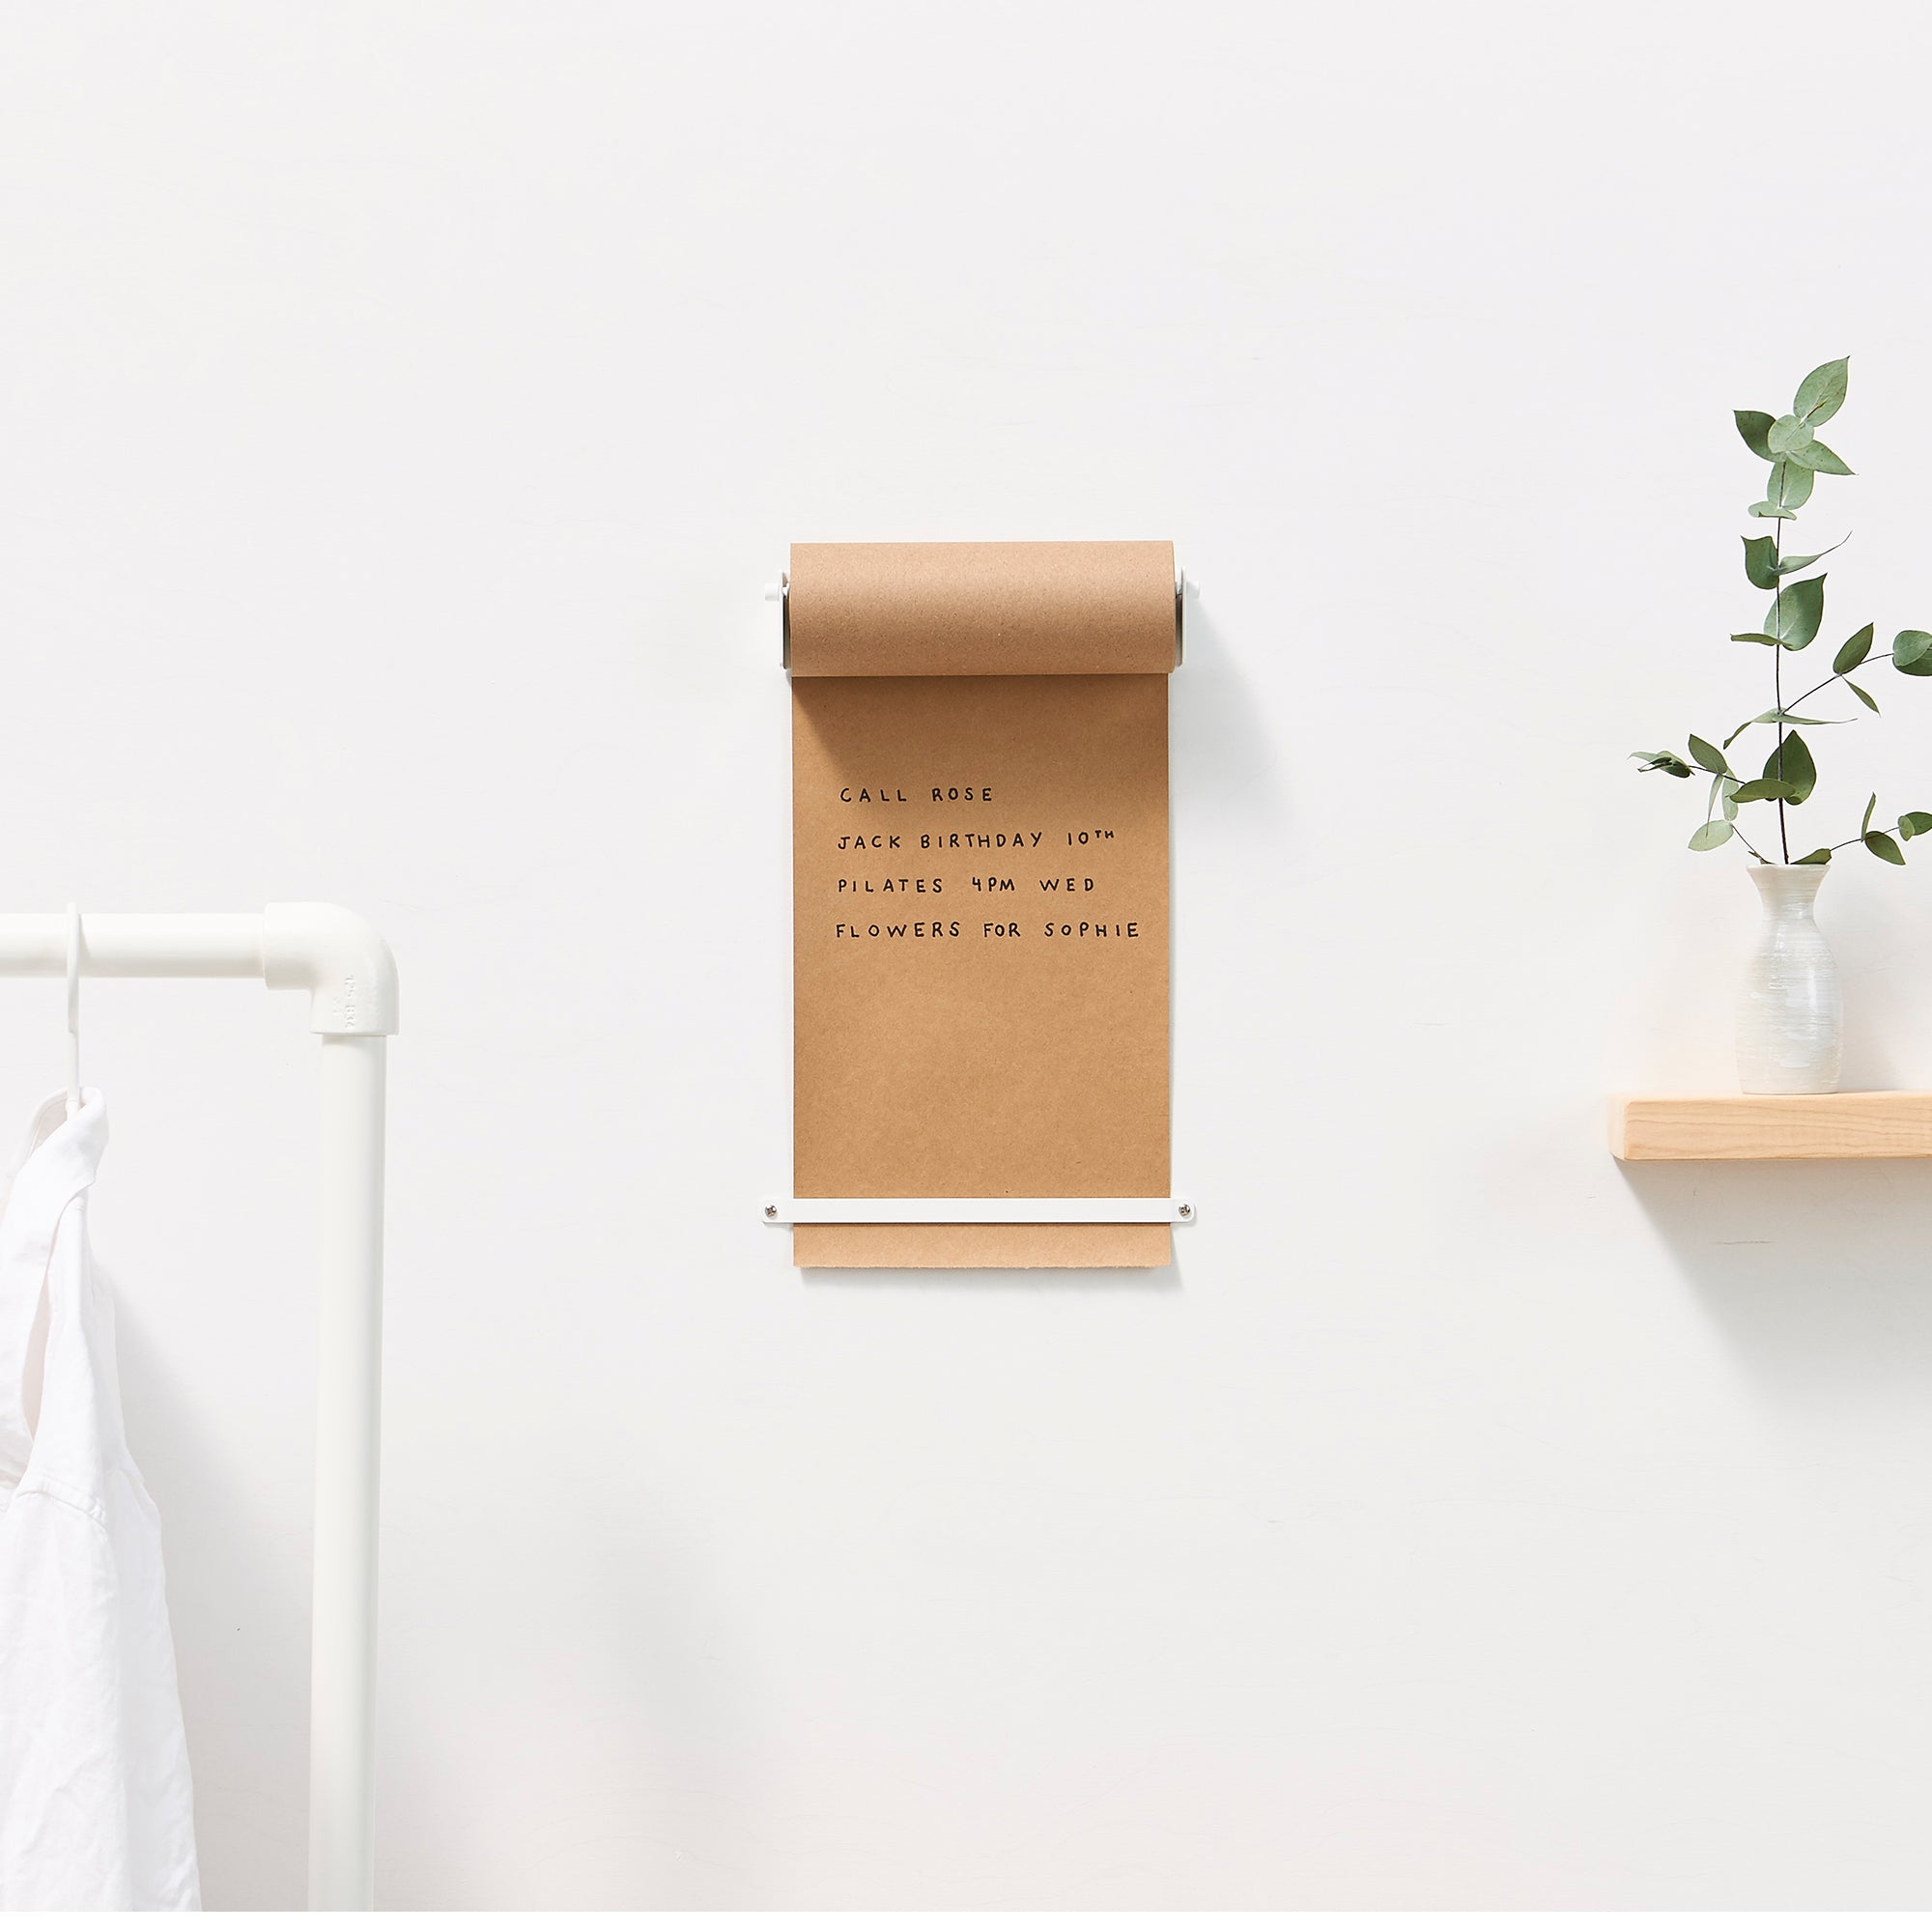 refillable kraft paper holder to install on wall of office or home